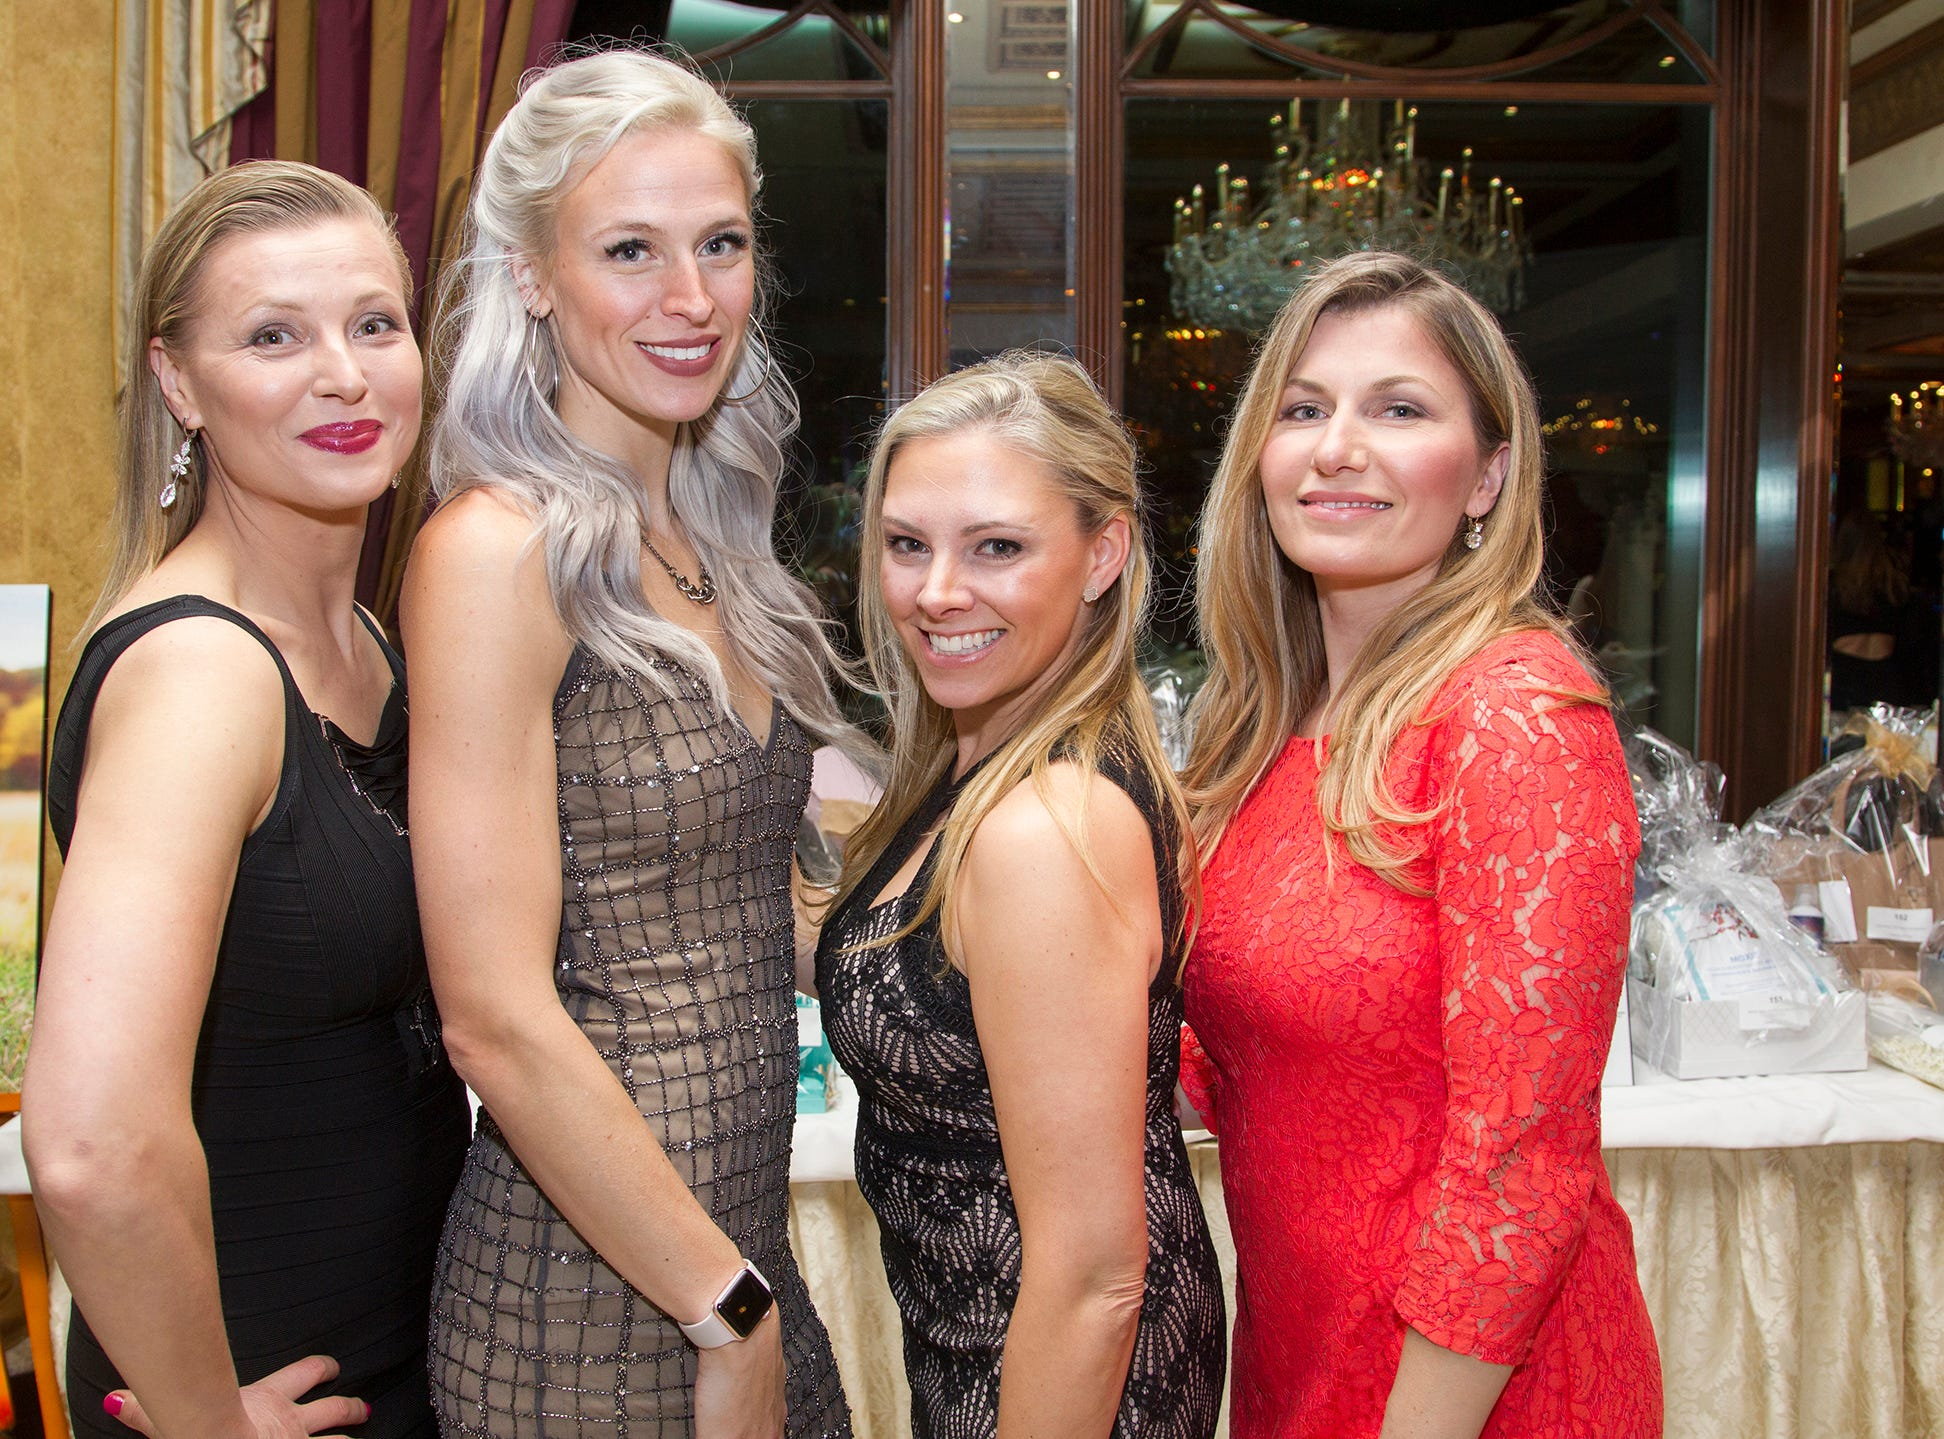 Berta Savreski, Kaitlin Diaz, Gina Kehoe, Orena Rito. Upper Saddle River Education Foundation hosted its Town Night Out Gala at Seasons in Washington Twp. 04/06/2019